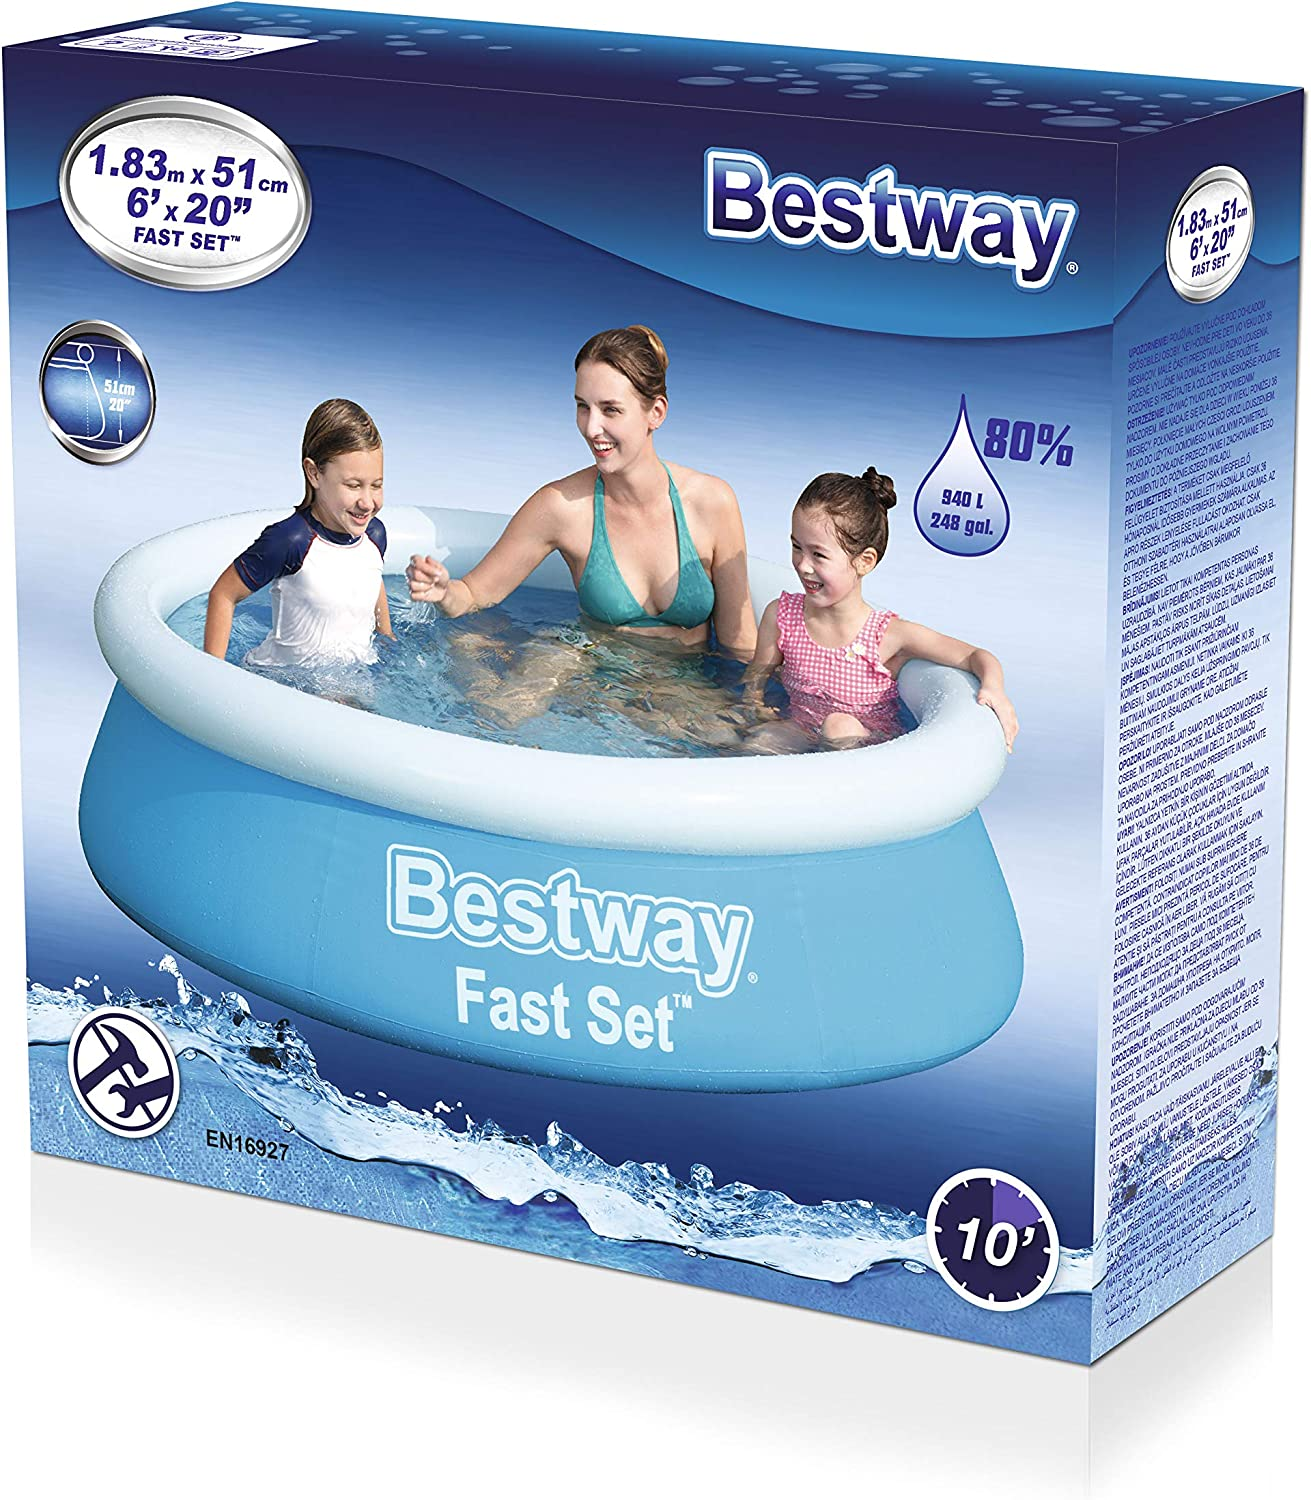 Bestway Piscina automontable 183x51, Azul: Amazon.es: Jardín